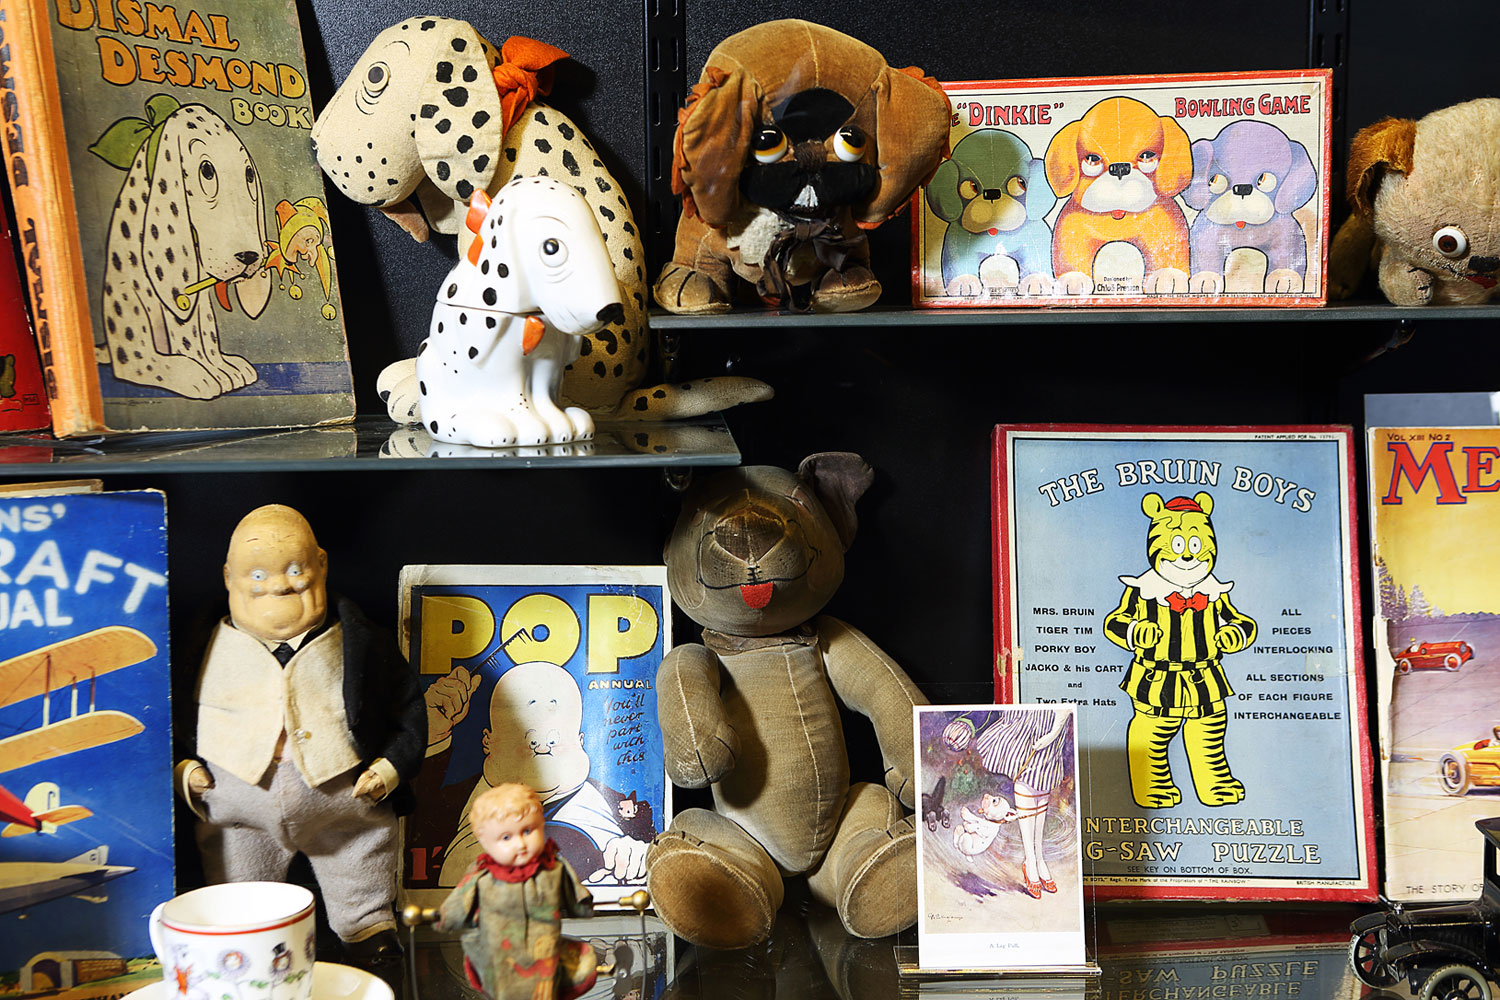 photogrpah of toys and packaging in a museum display